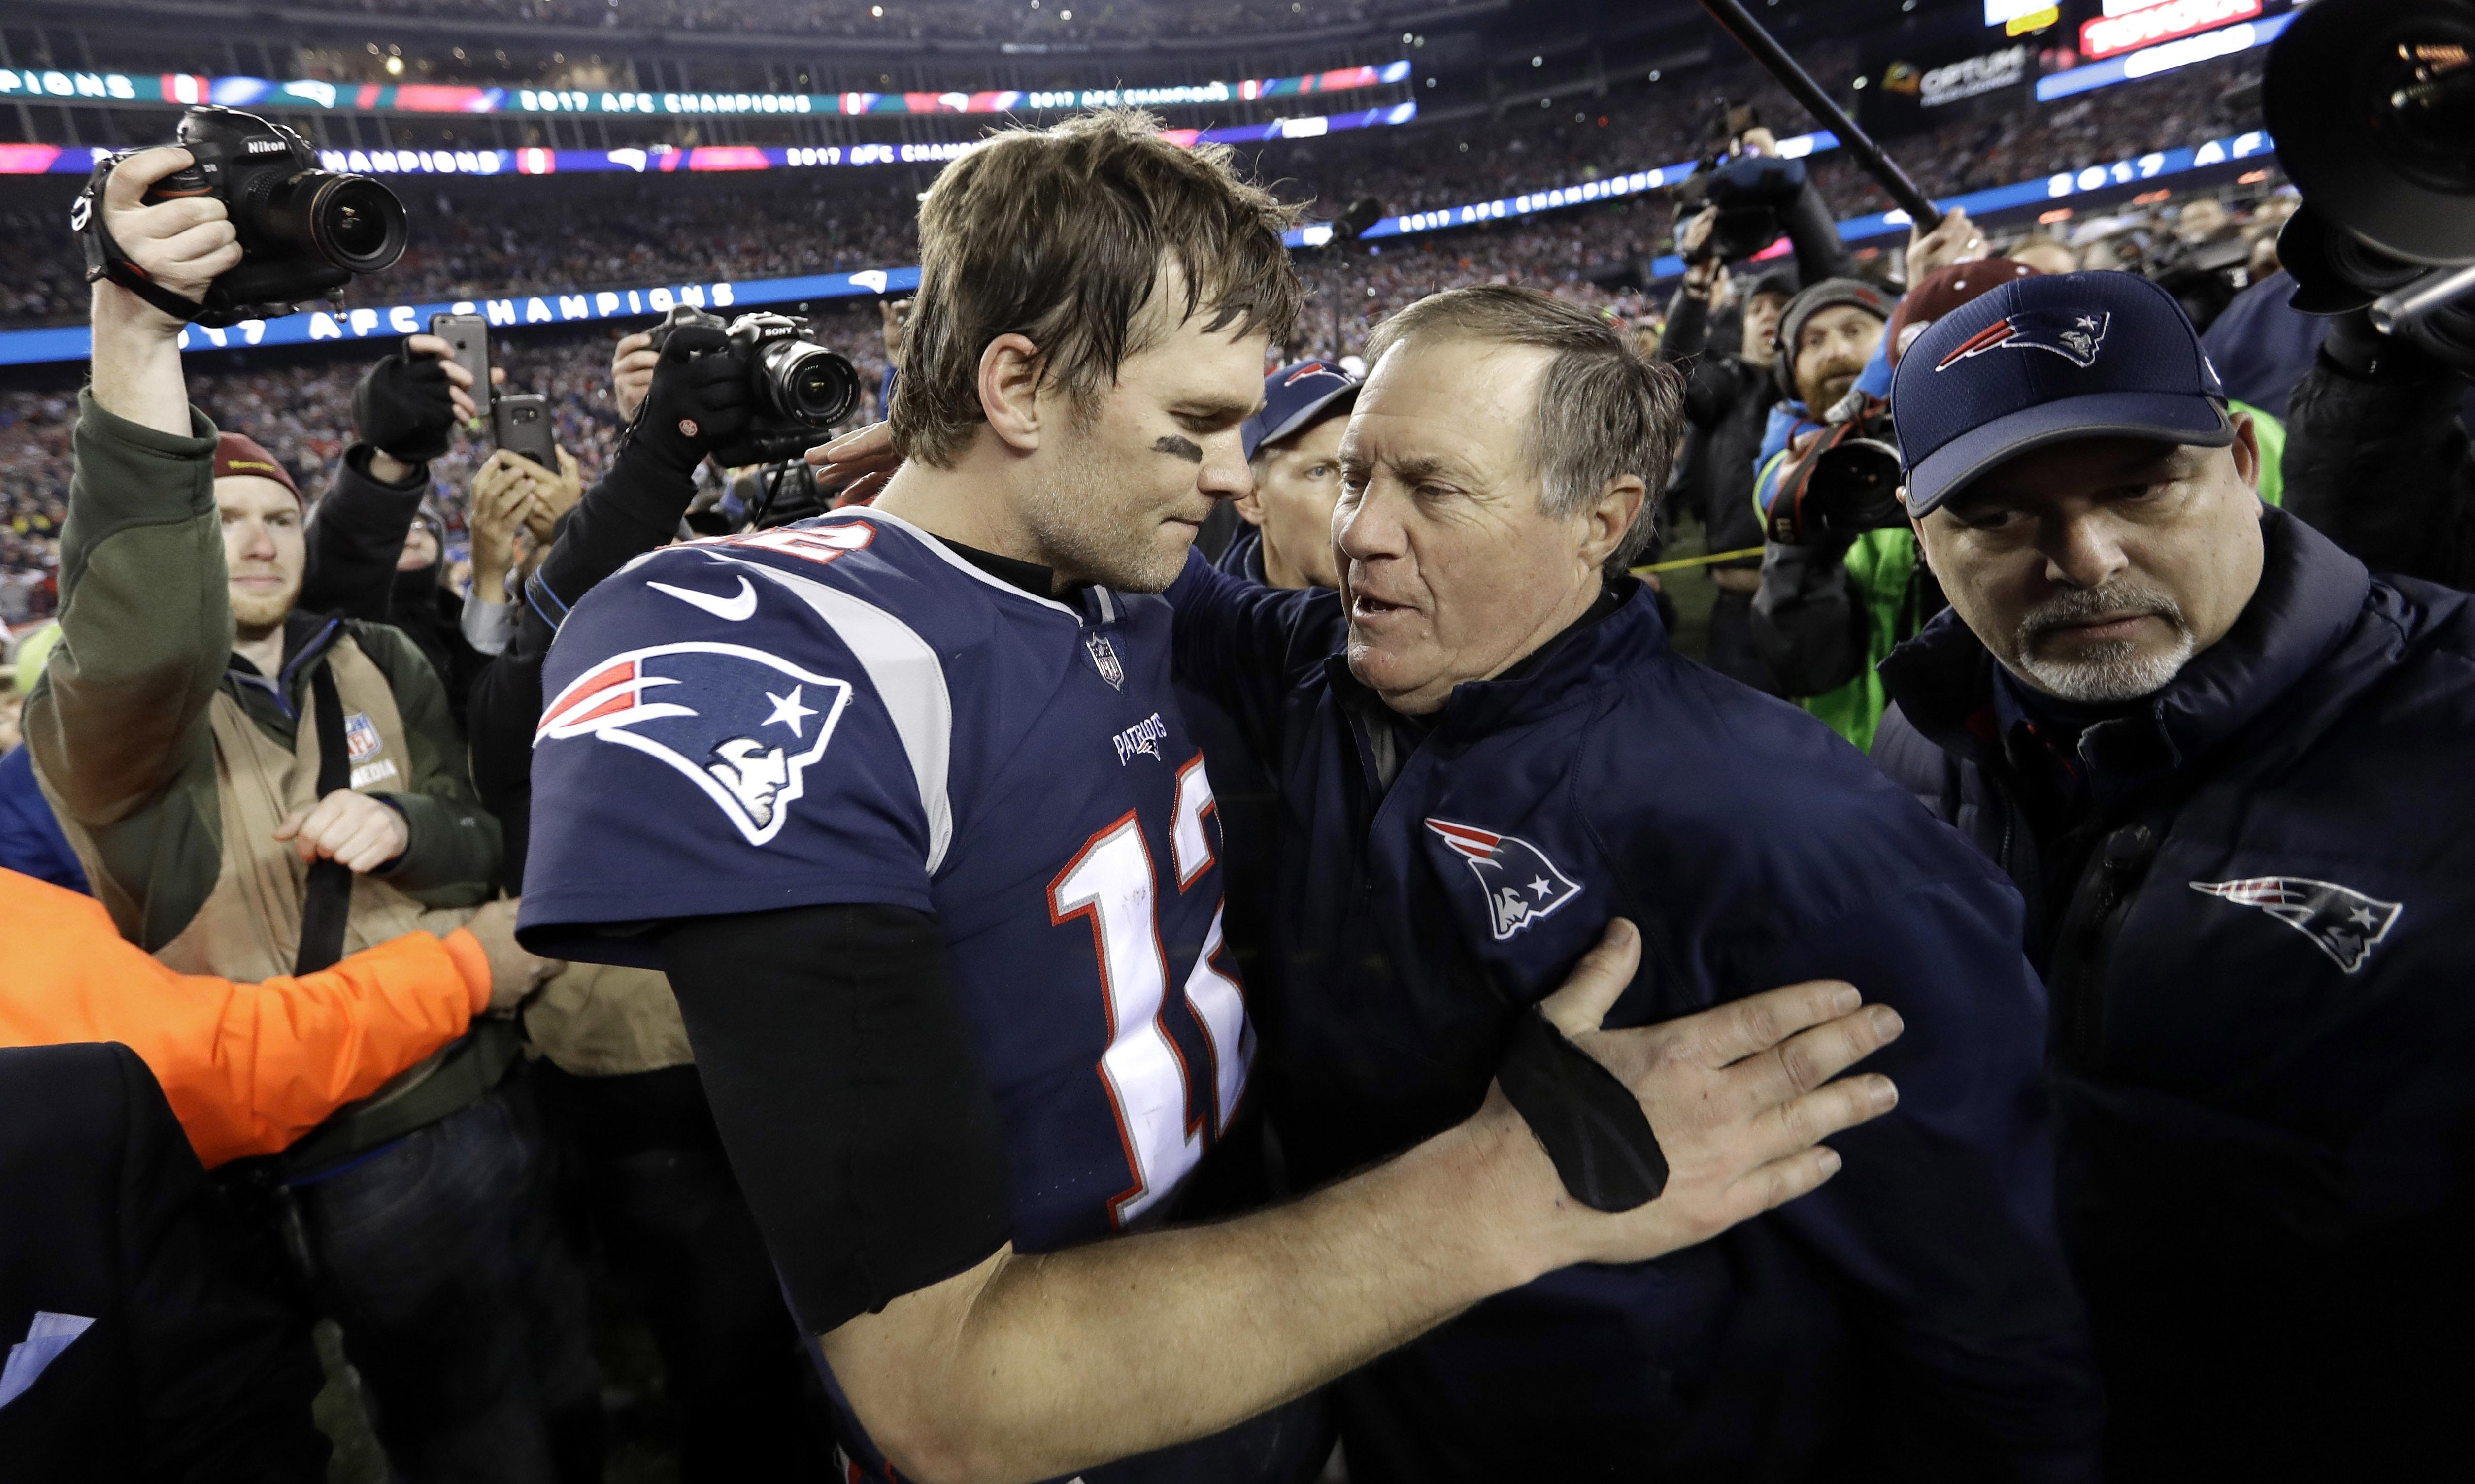 Hated by Them, loved by Us. With Tom Brady's exit the Patriots dynasty is over